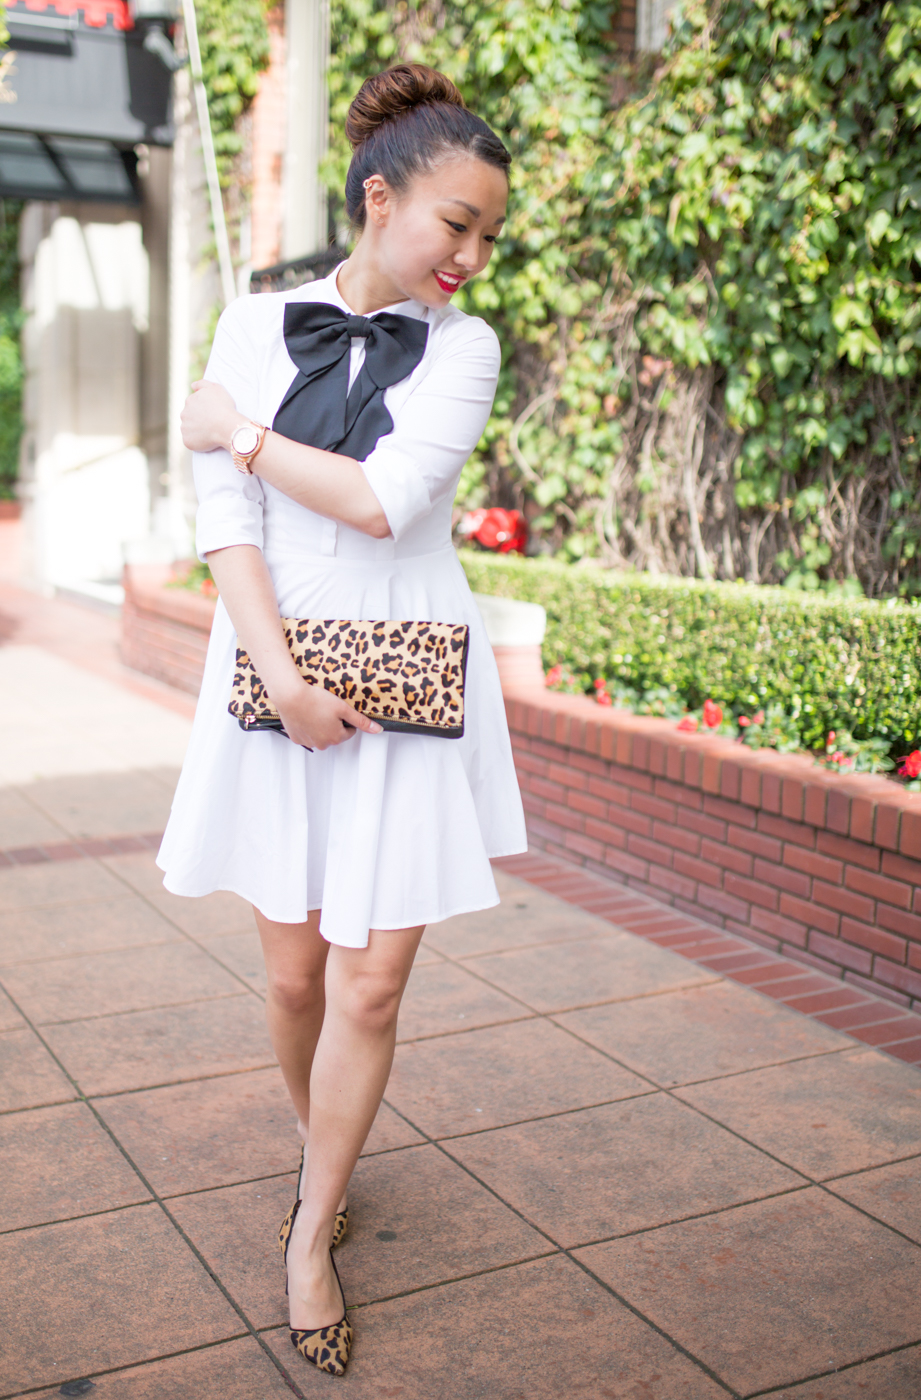 Leopard pumps and clutch | via The Chic Diary